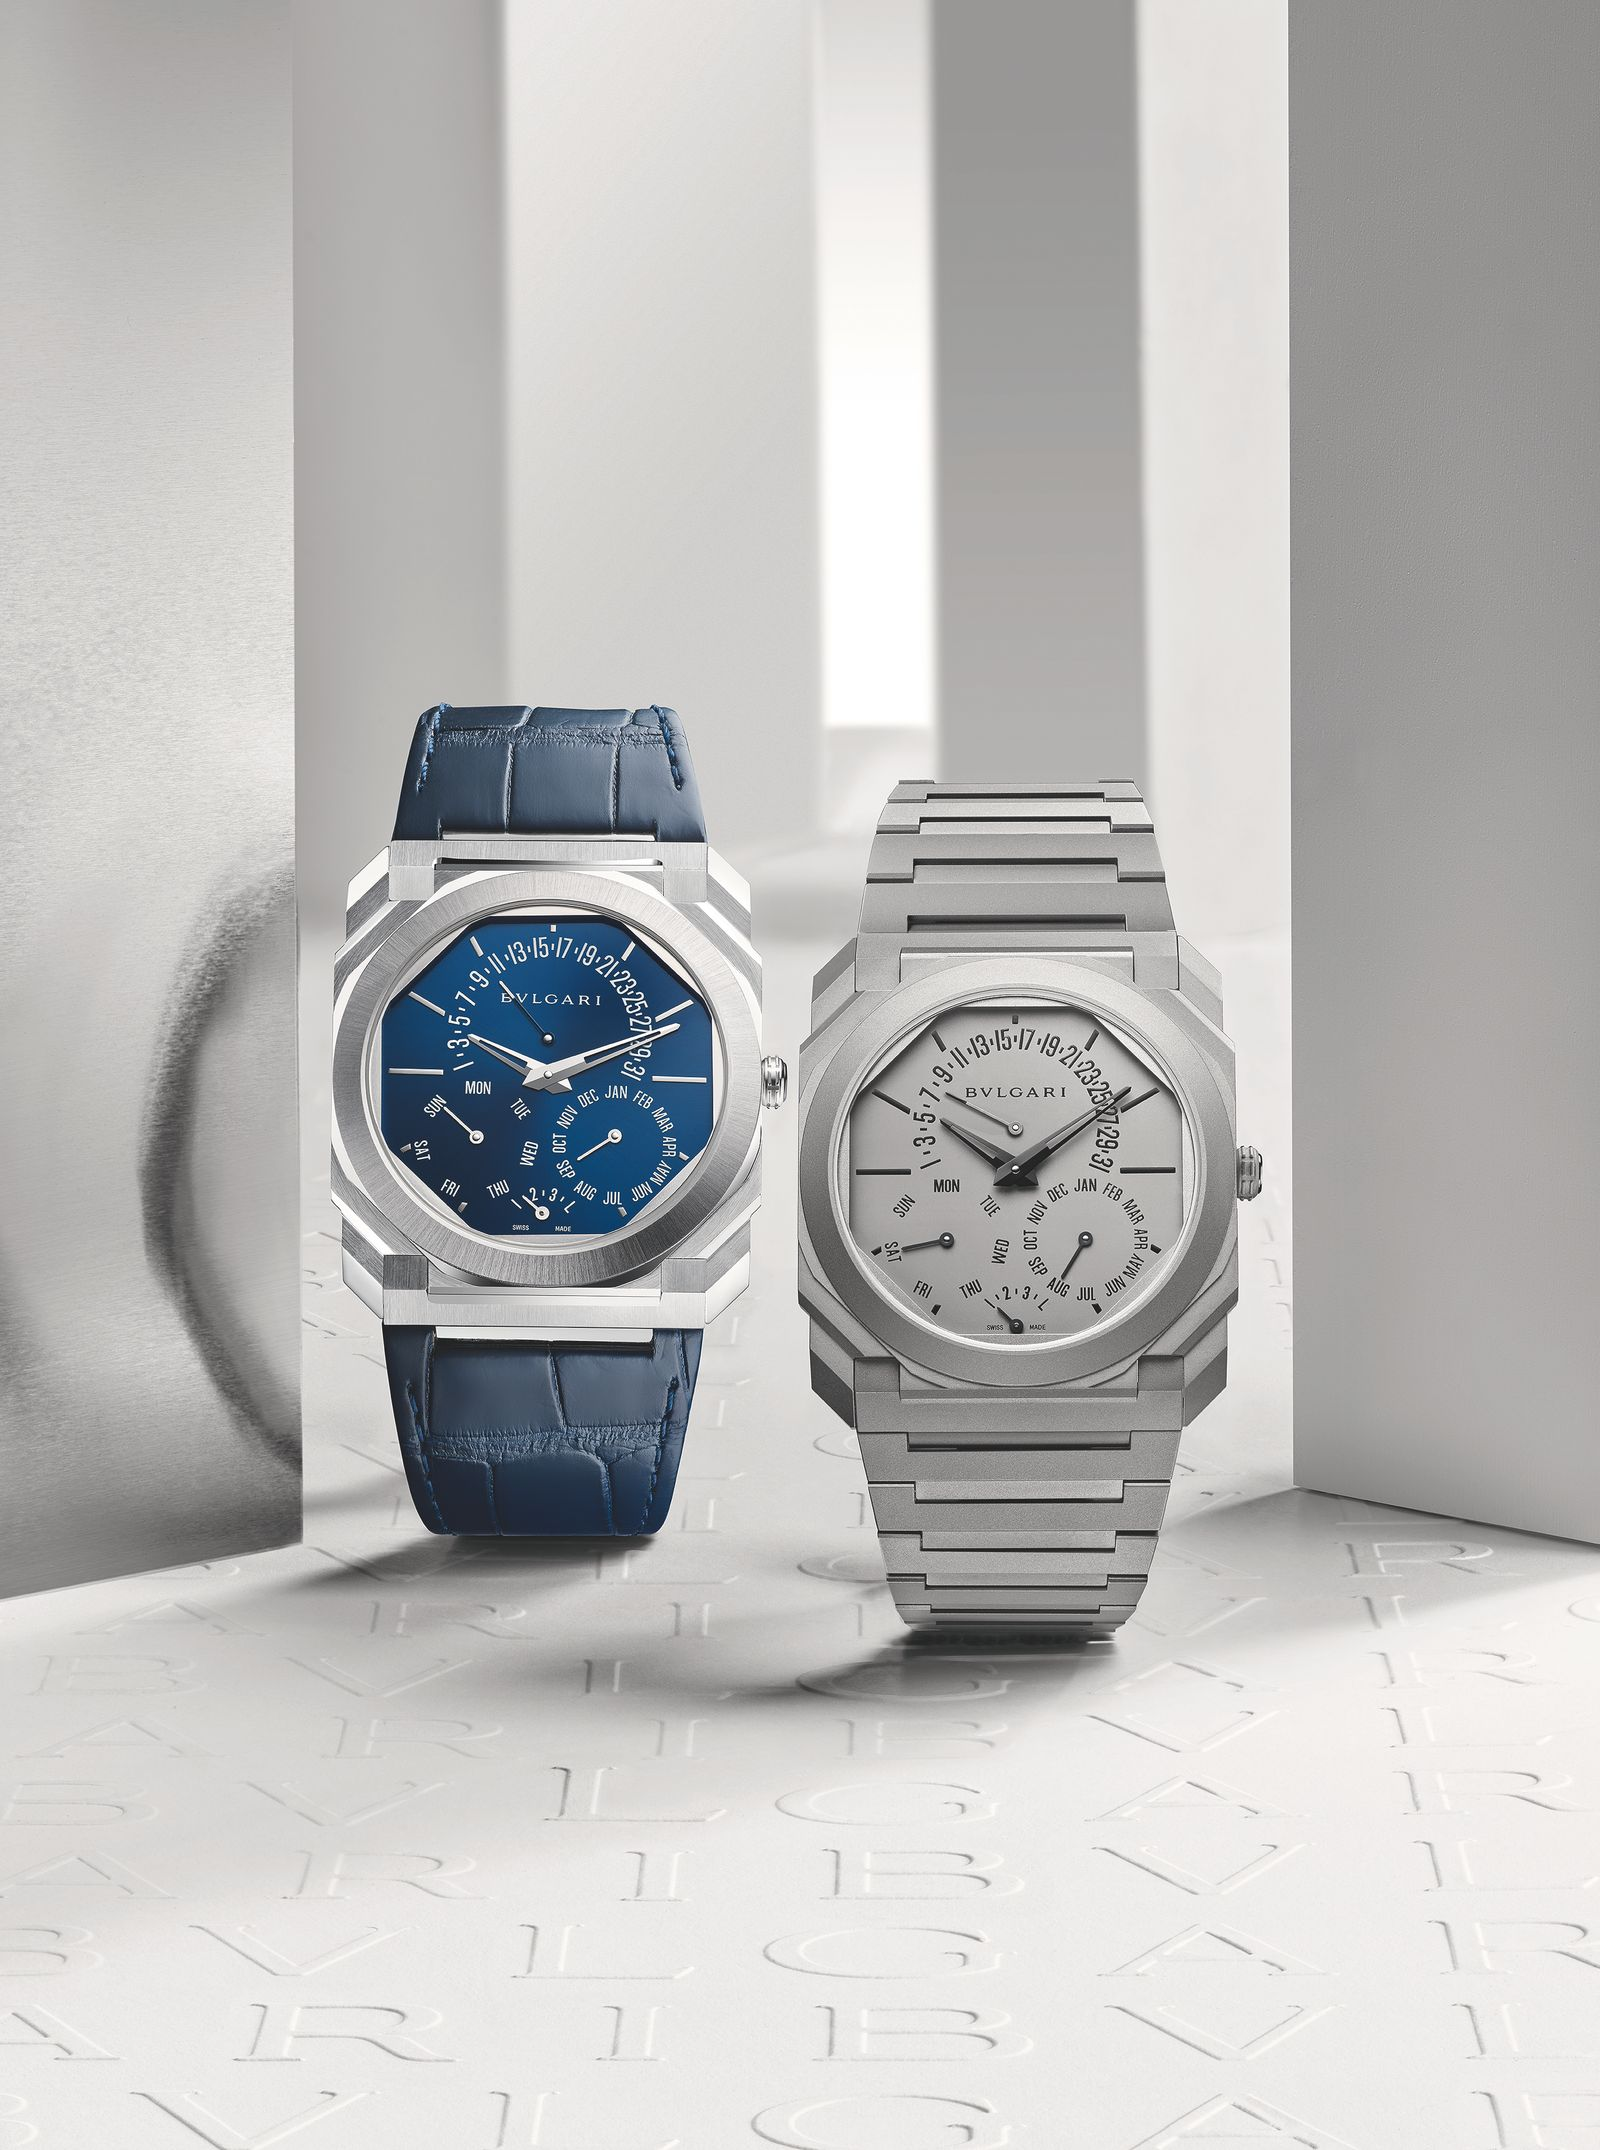 SIHH | Watches and Wonders | Bulgari Octo Finissimo Perpetual Calendar